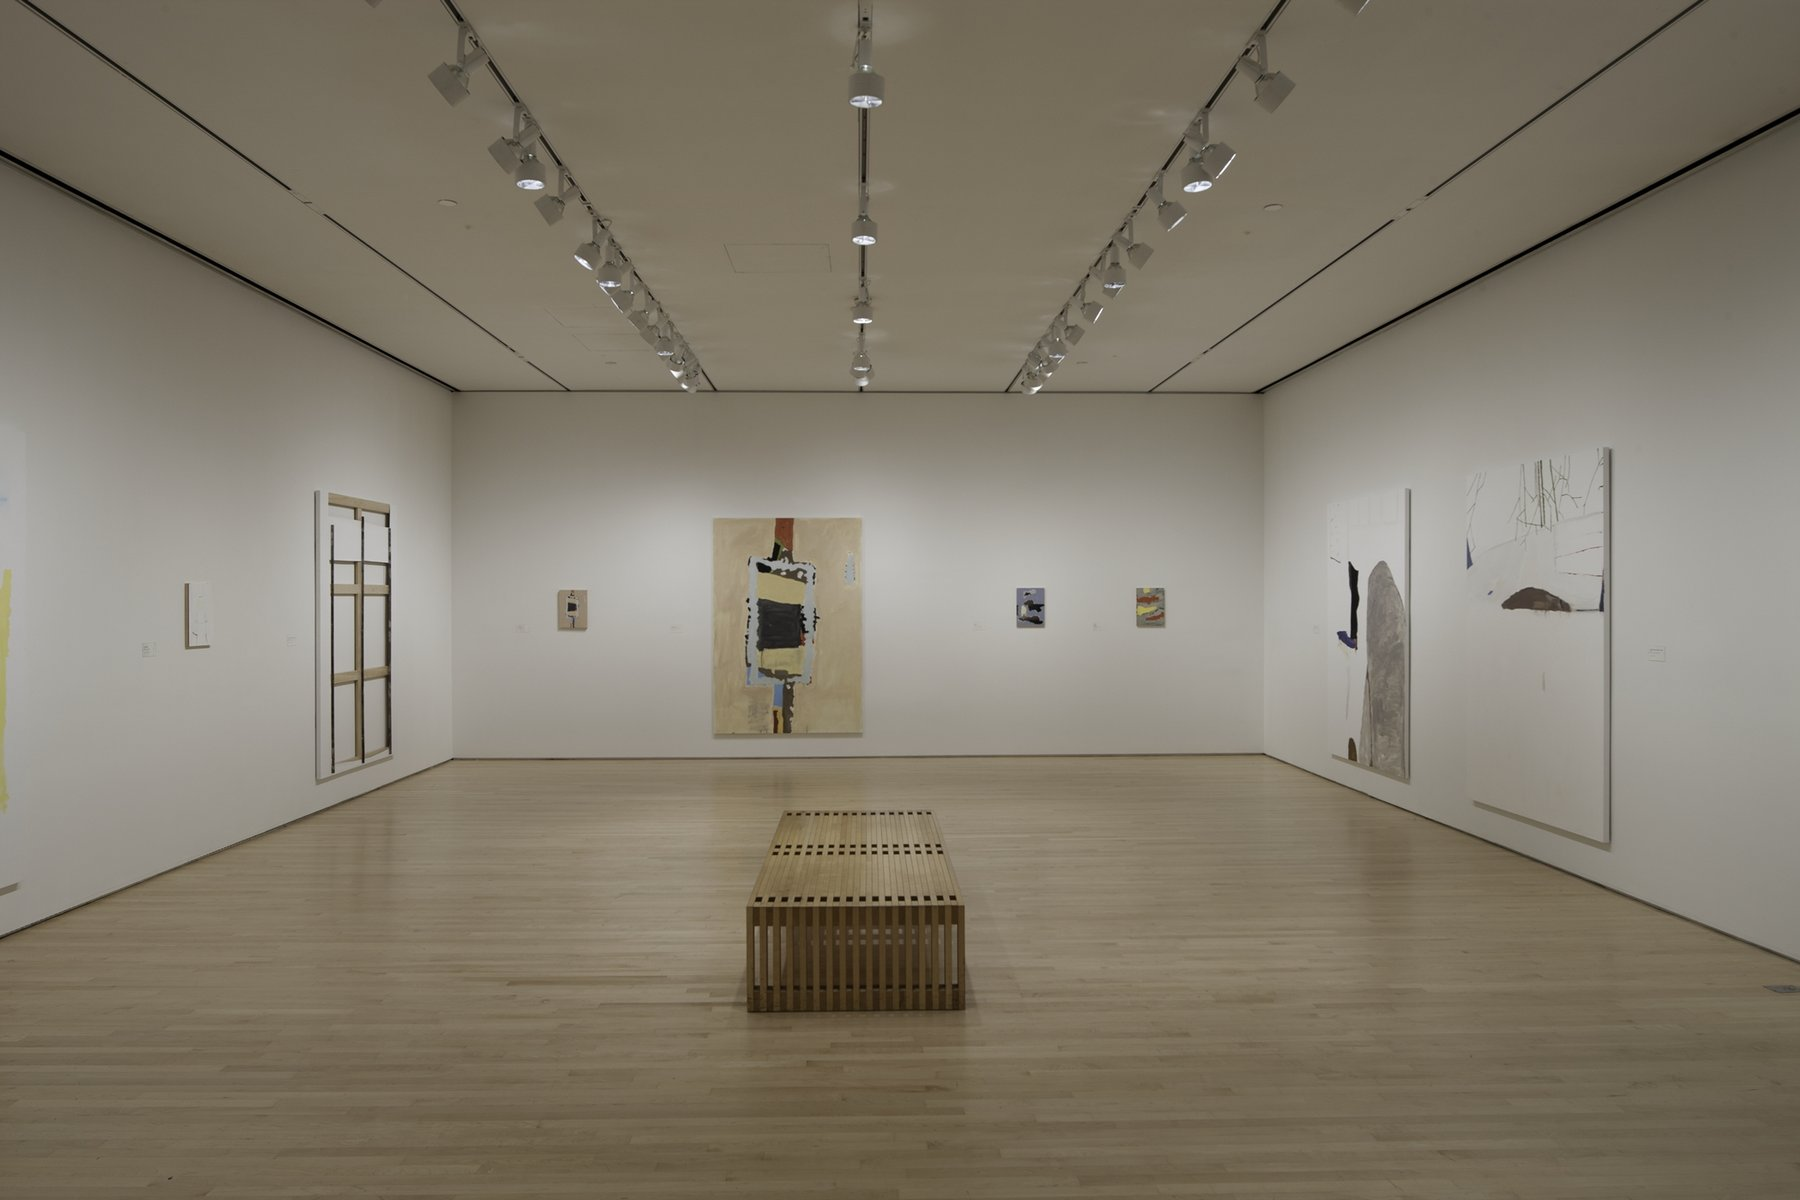 1.)	A white room with a bench in the middle of the room. The white walls have Richard Aldrich's work on them.